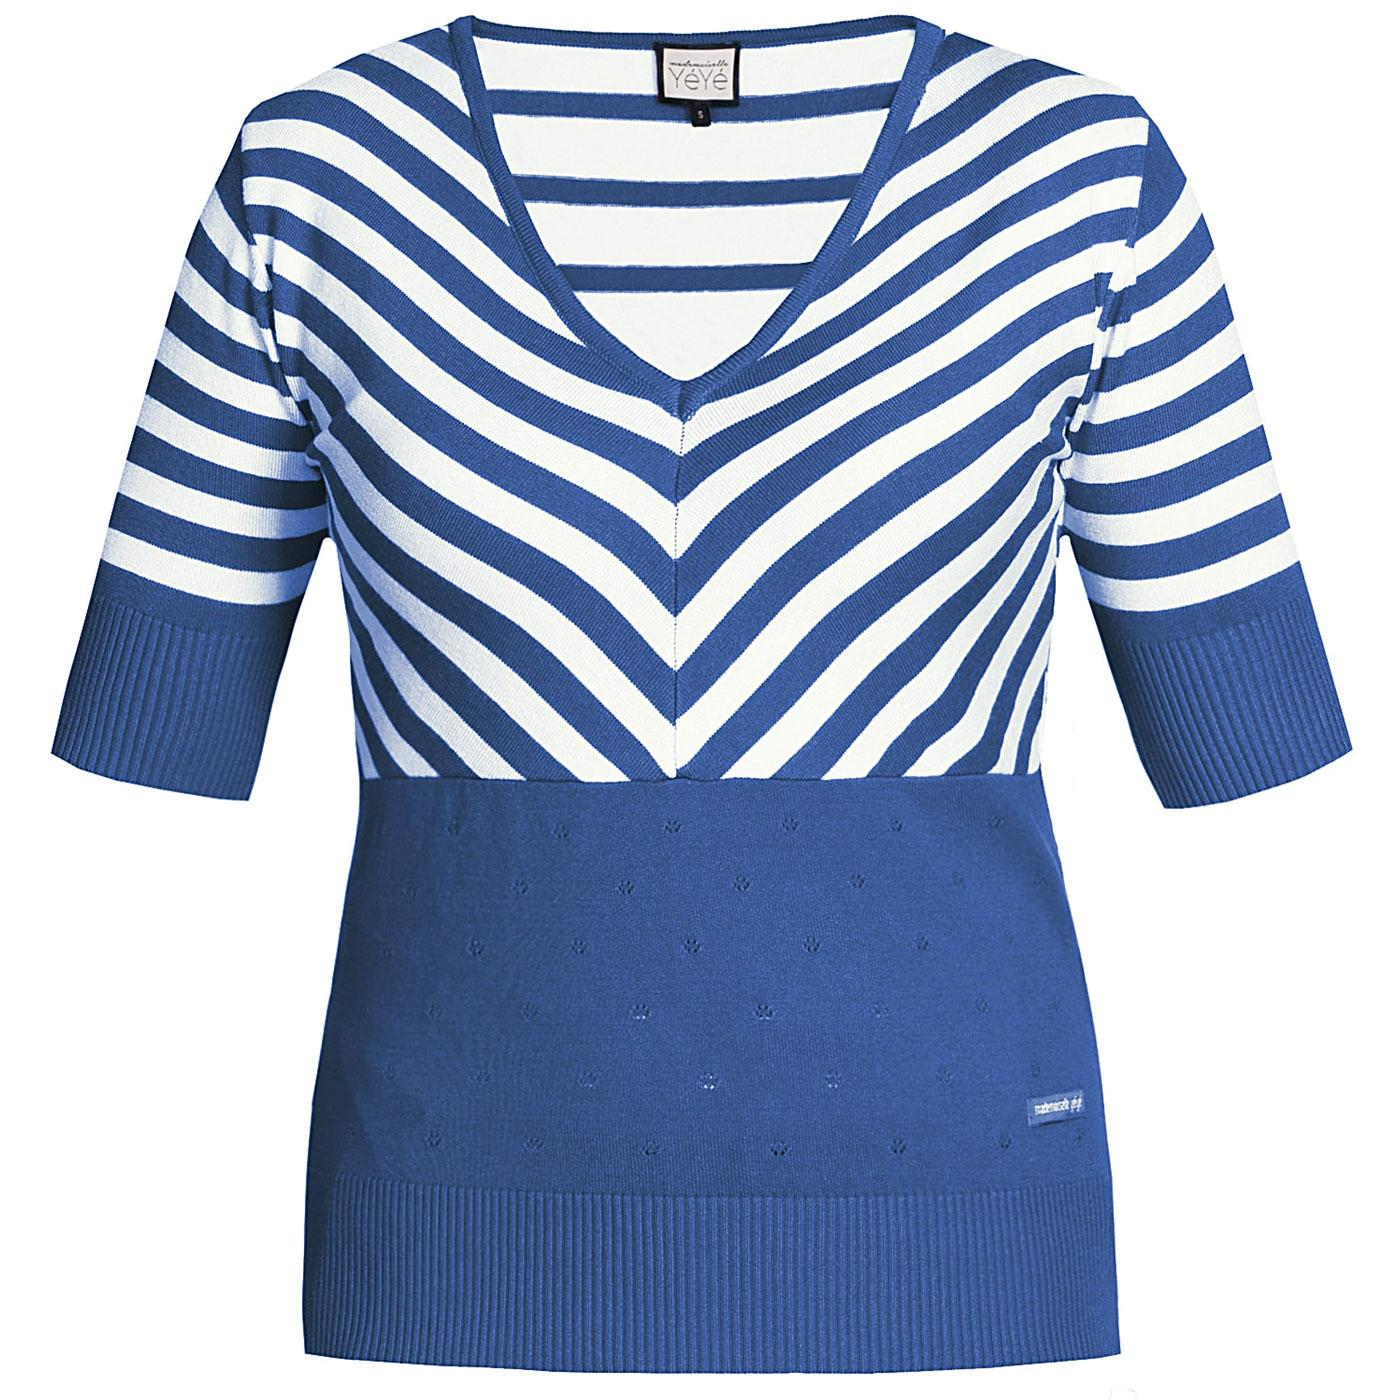 Stripes Lover MADEMOISELLE YEYE Retro 60s Top Blue